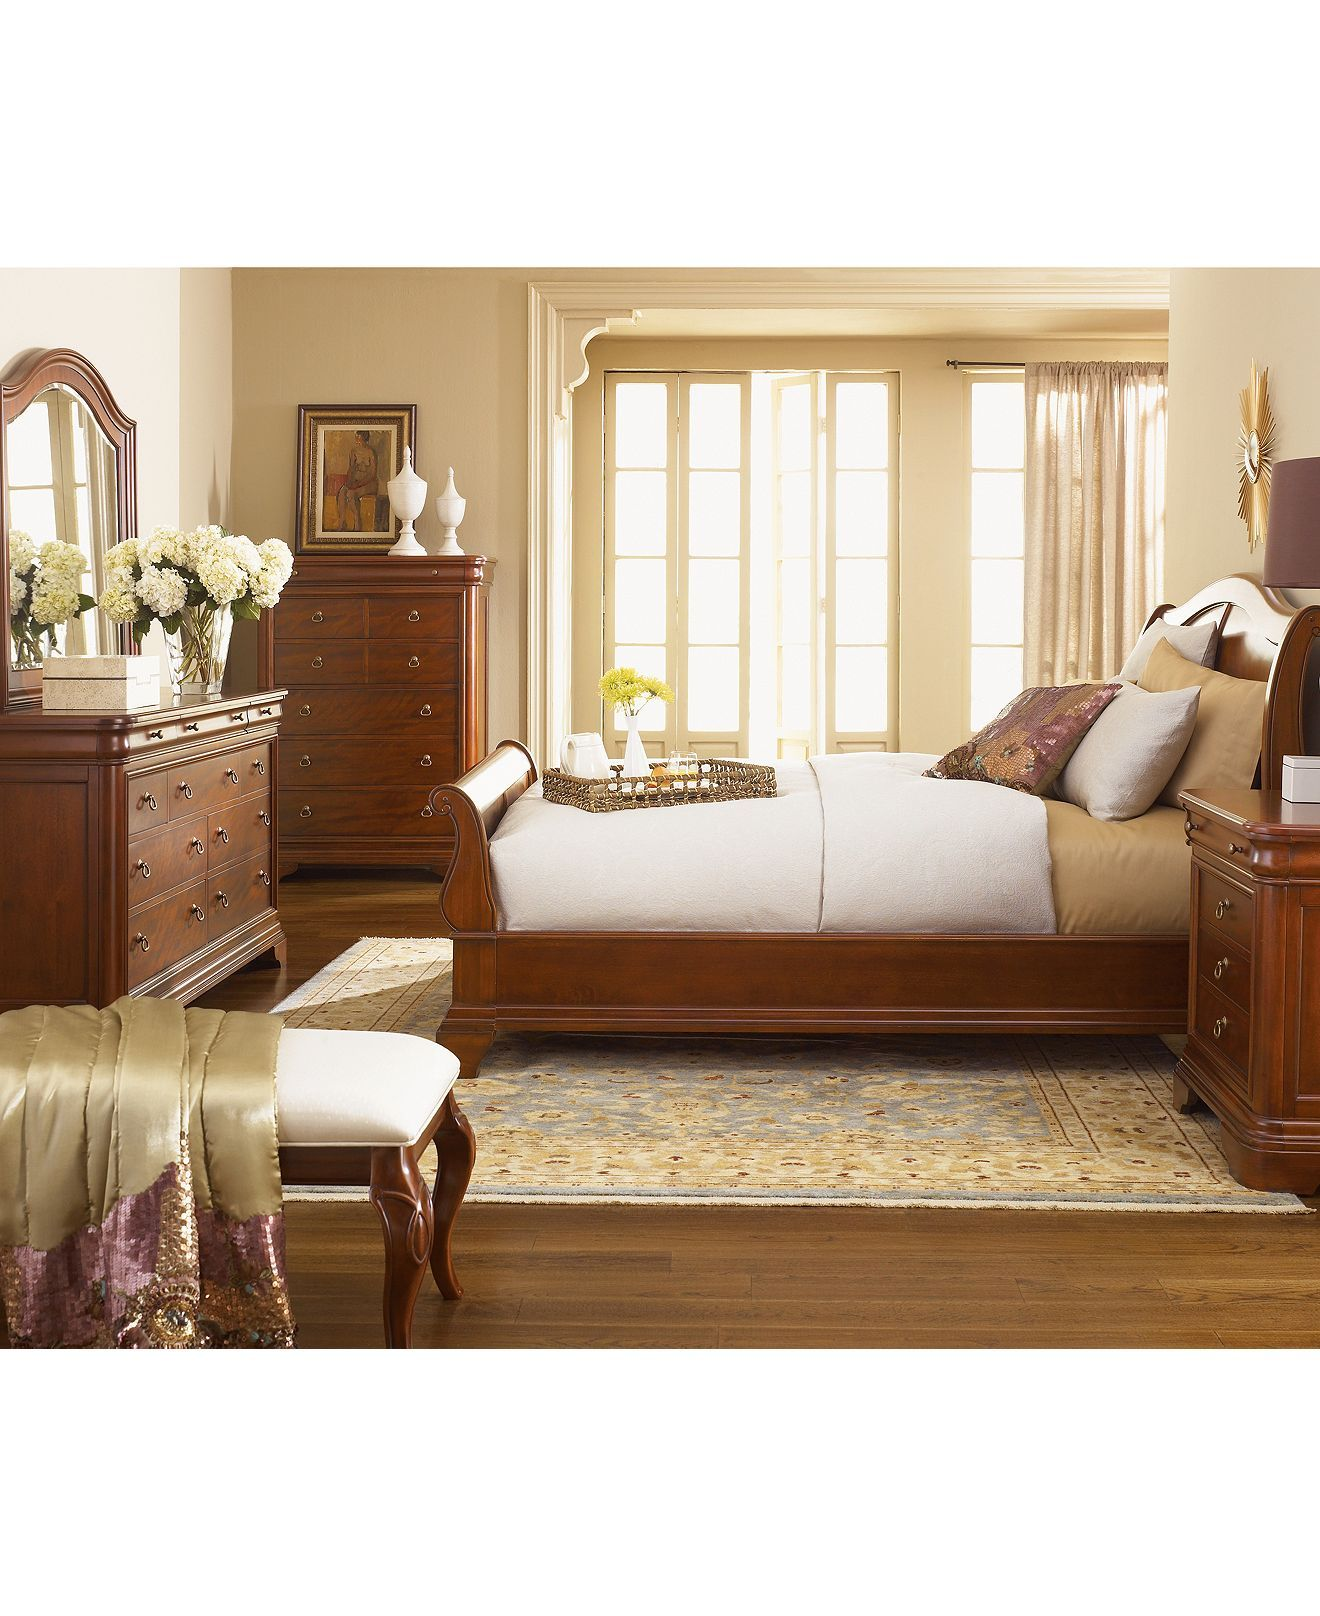 Bordeaux Louis Philippe Style Bedroom Furniture Collection Reviews Macy S